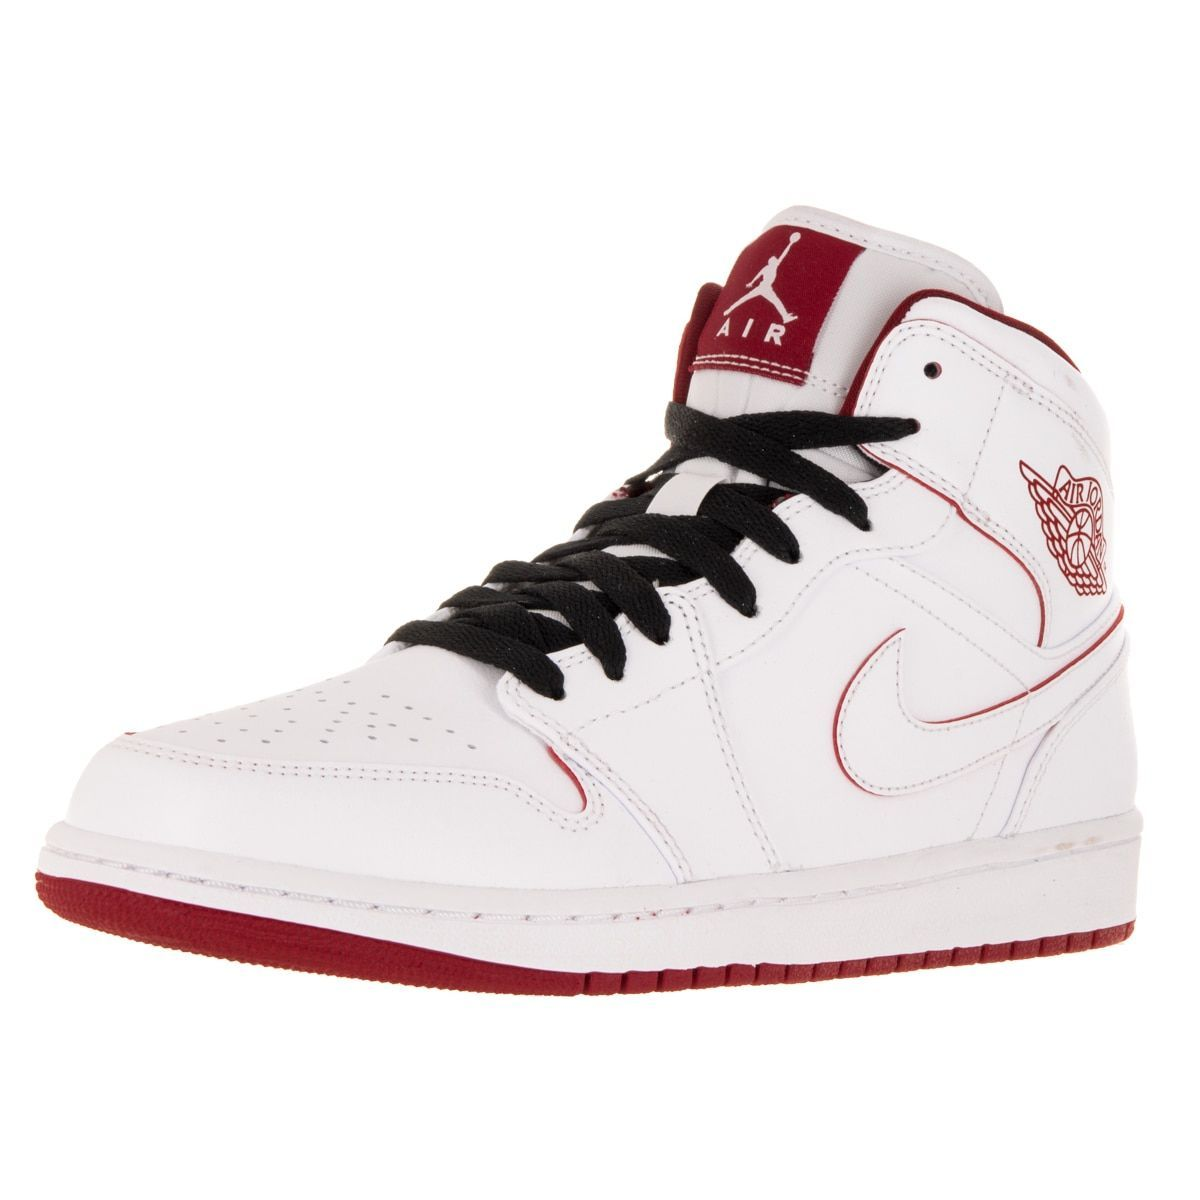 Nike Jordan Men's Air Jordan 1 Mid /Gym Red/Black Basketball Shoe